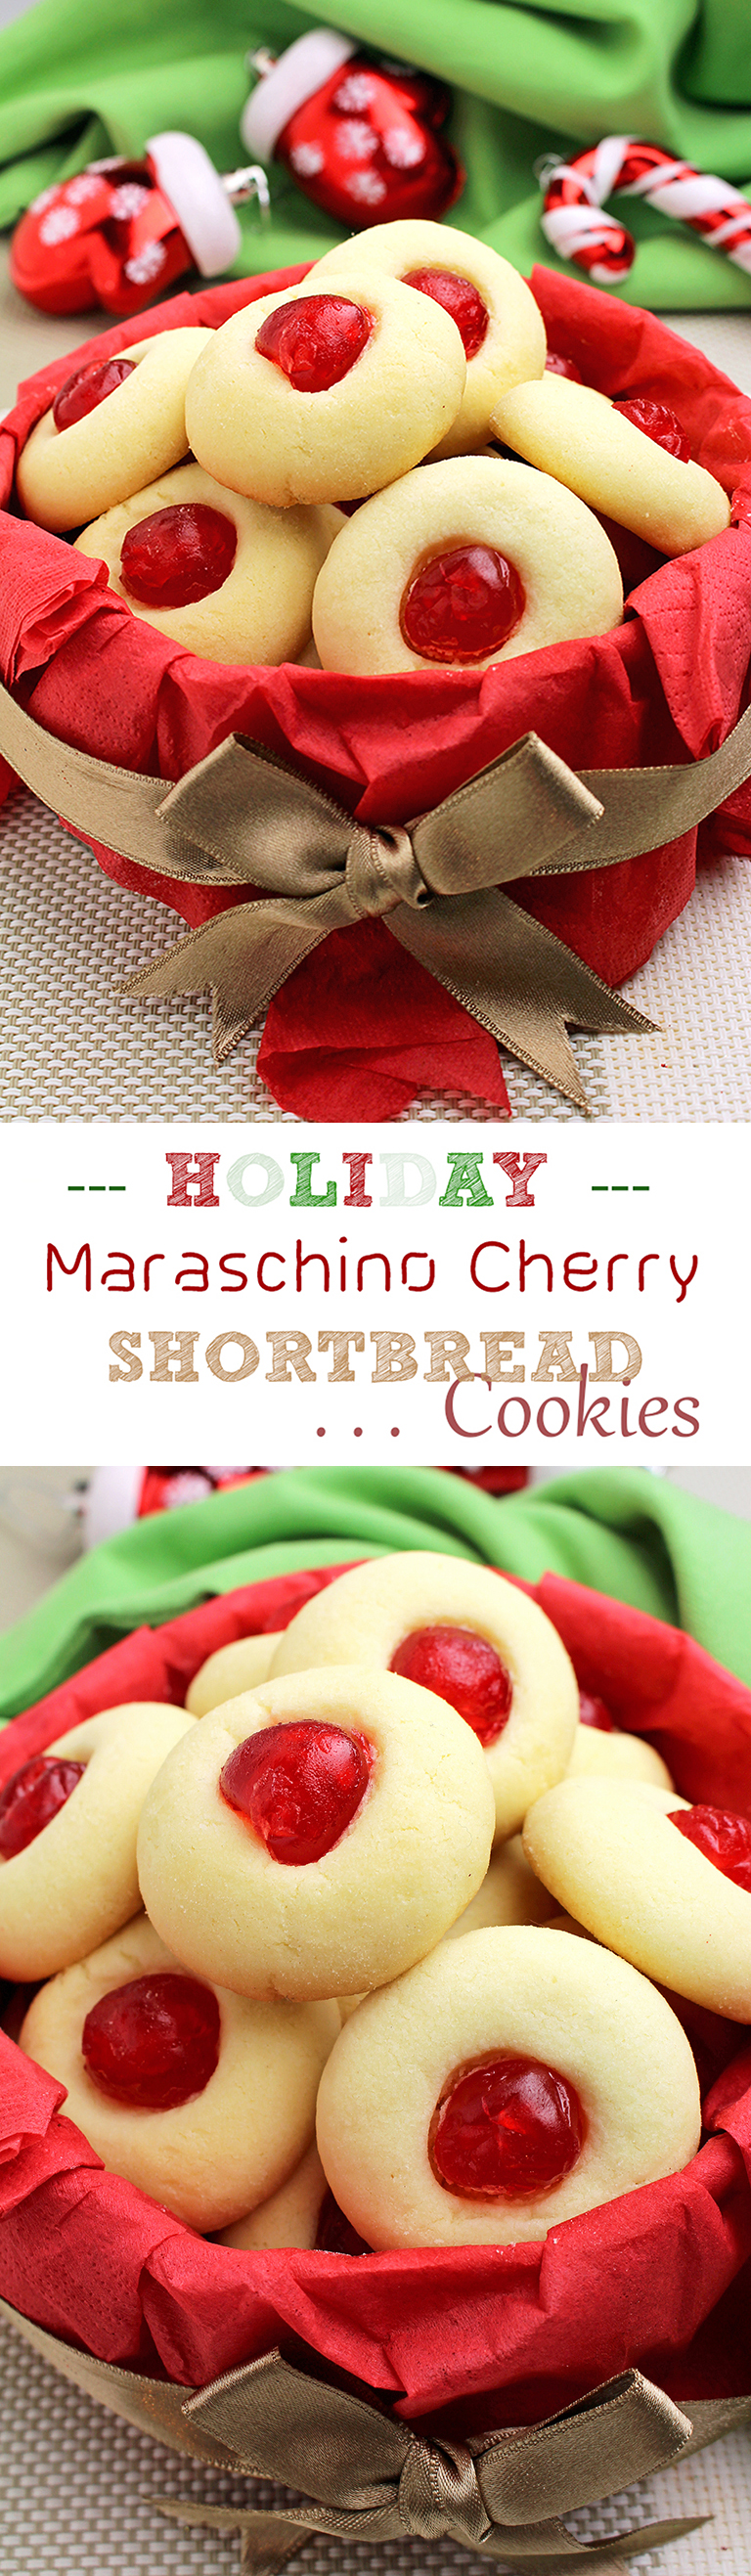 Holiday Maraschino Cherry Shortbread Cookies… Christmas, New Year, Santa Claus, Christmas Tree, Cookies… everything is about holidays these days.